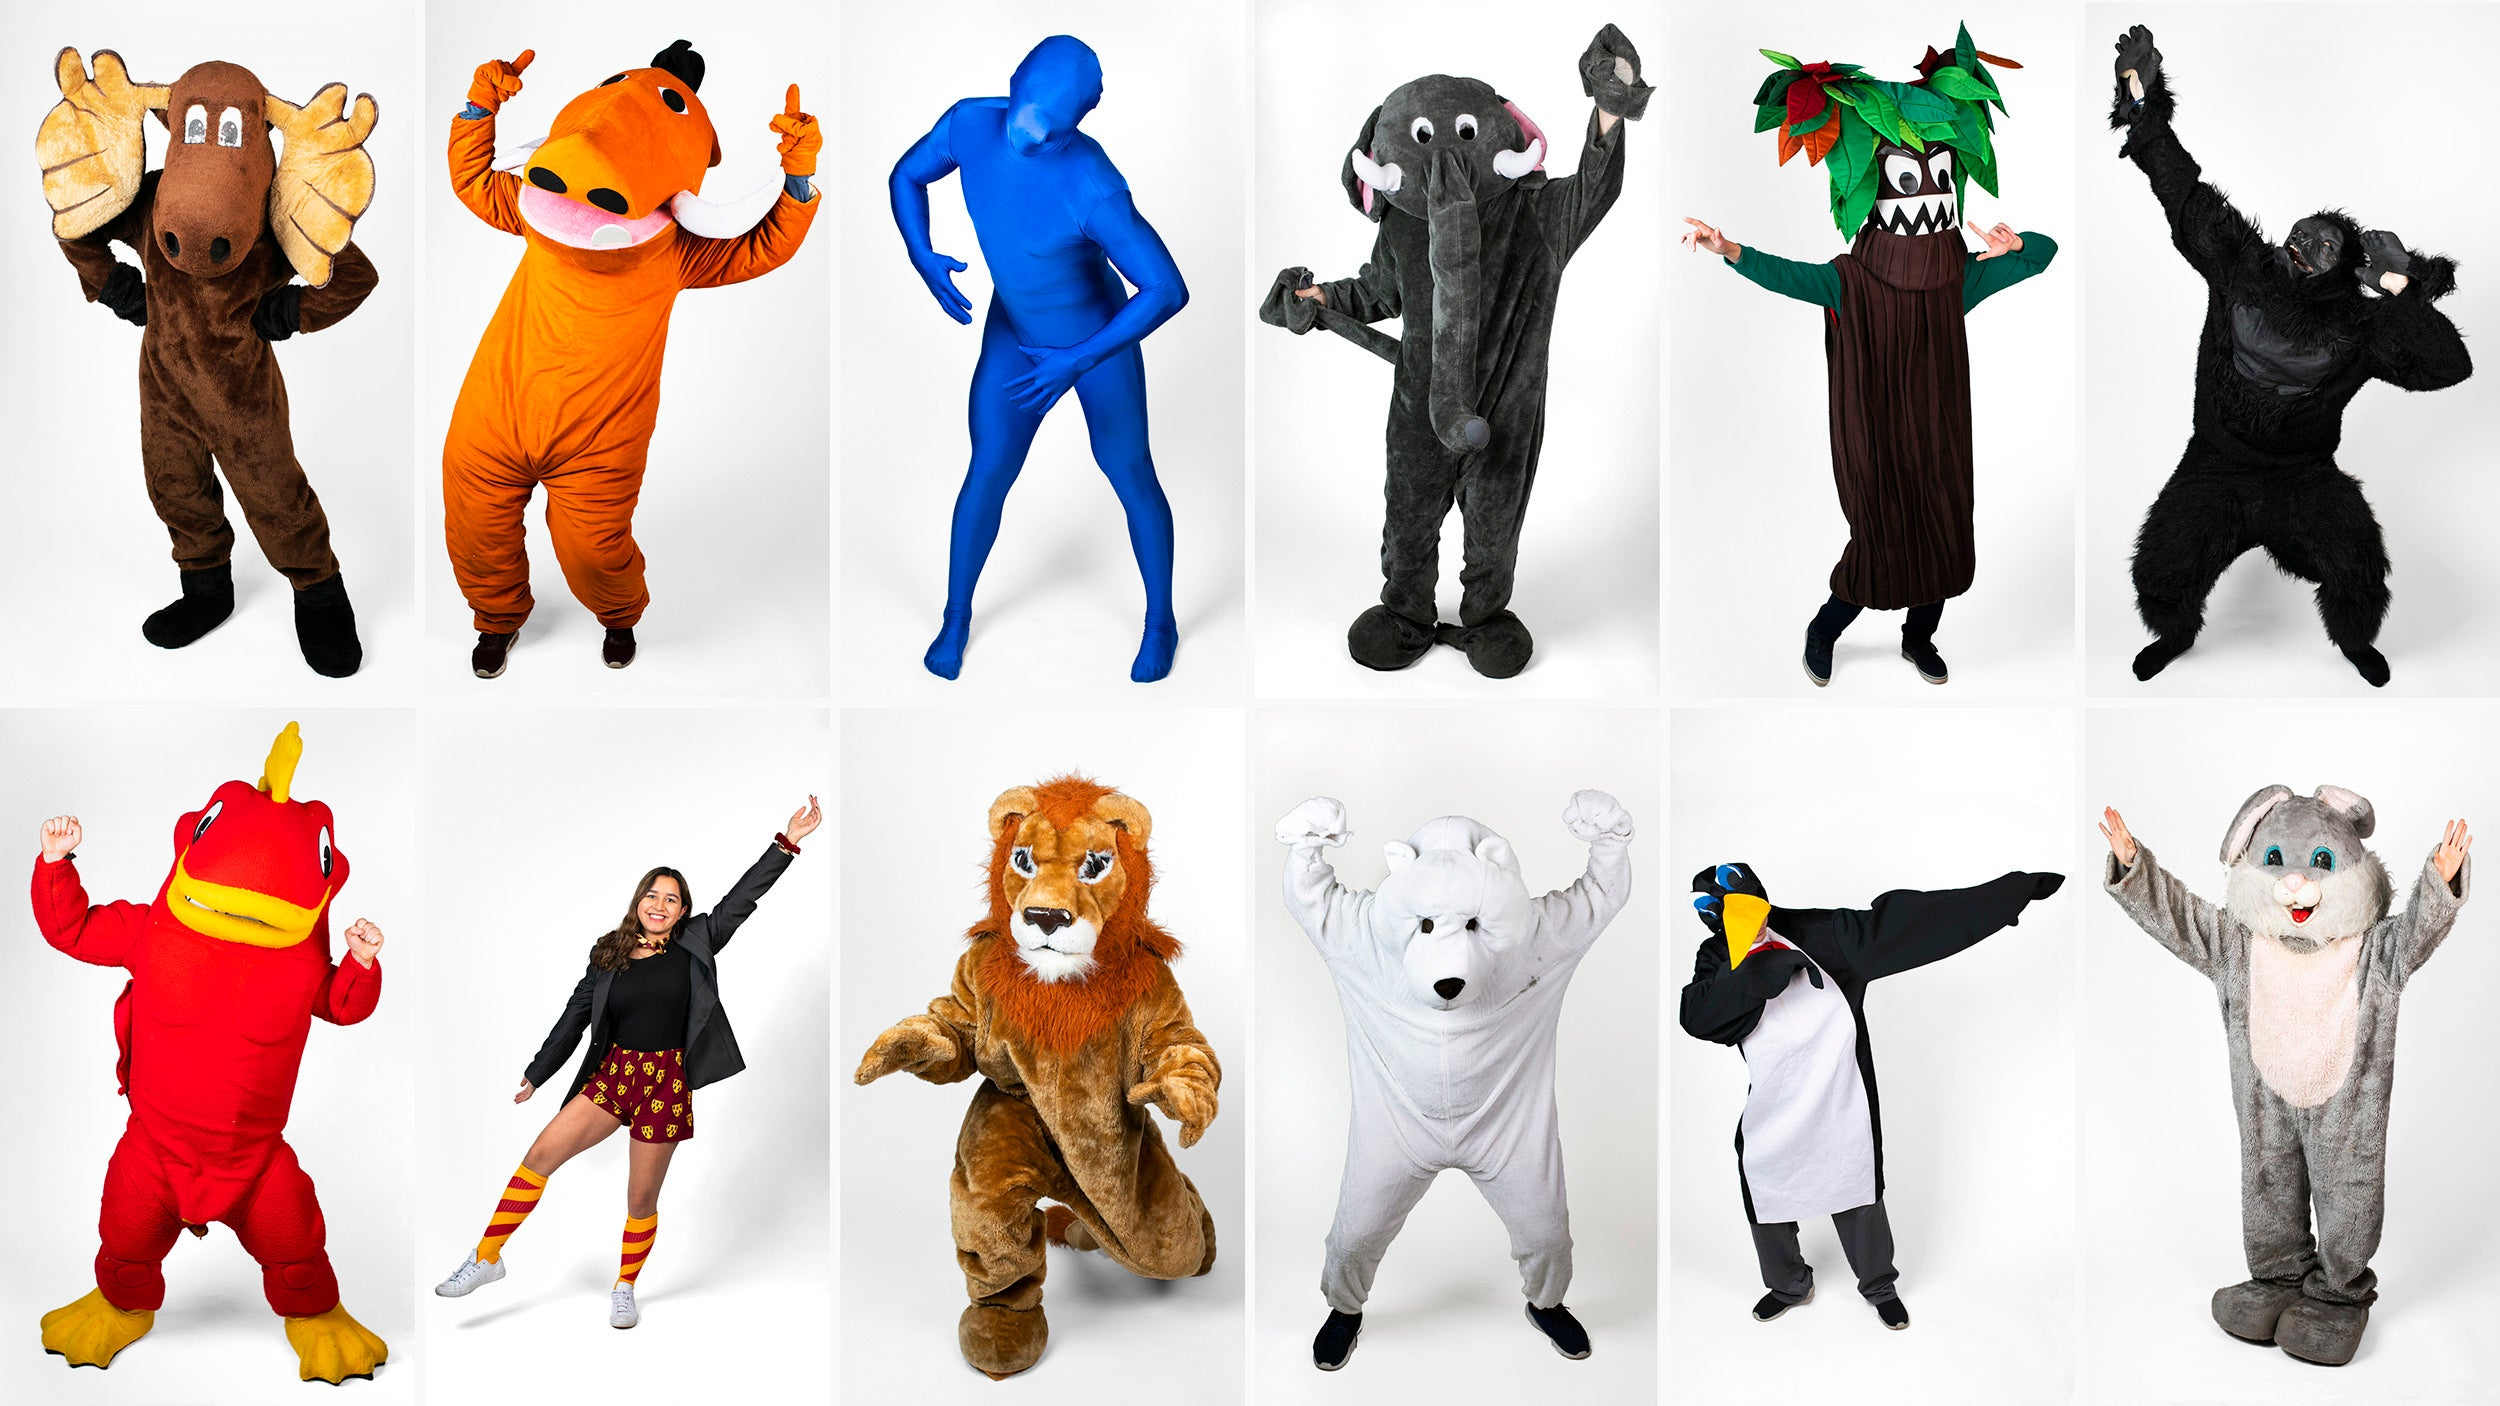 All twelve House mascots are pictured in costume striking a pose.